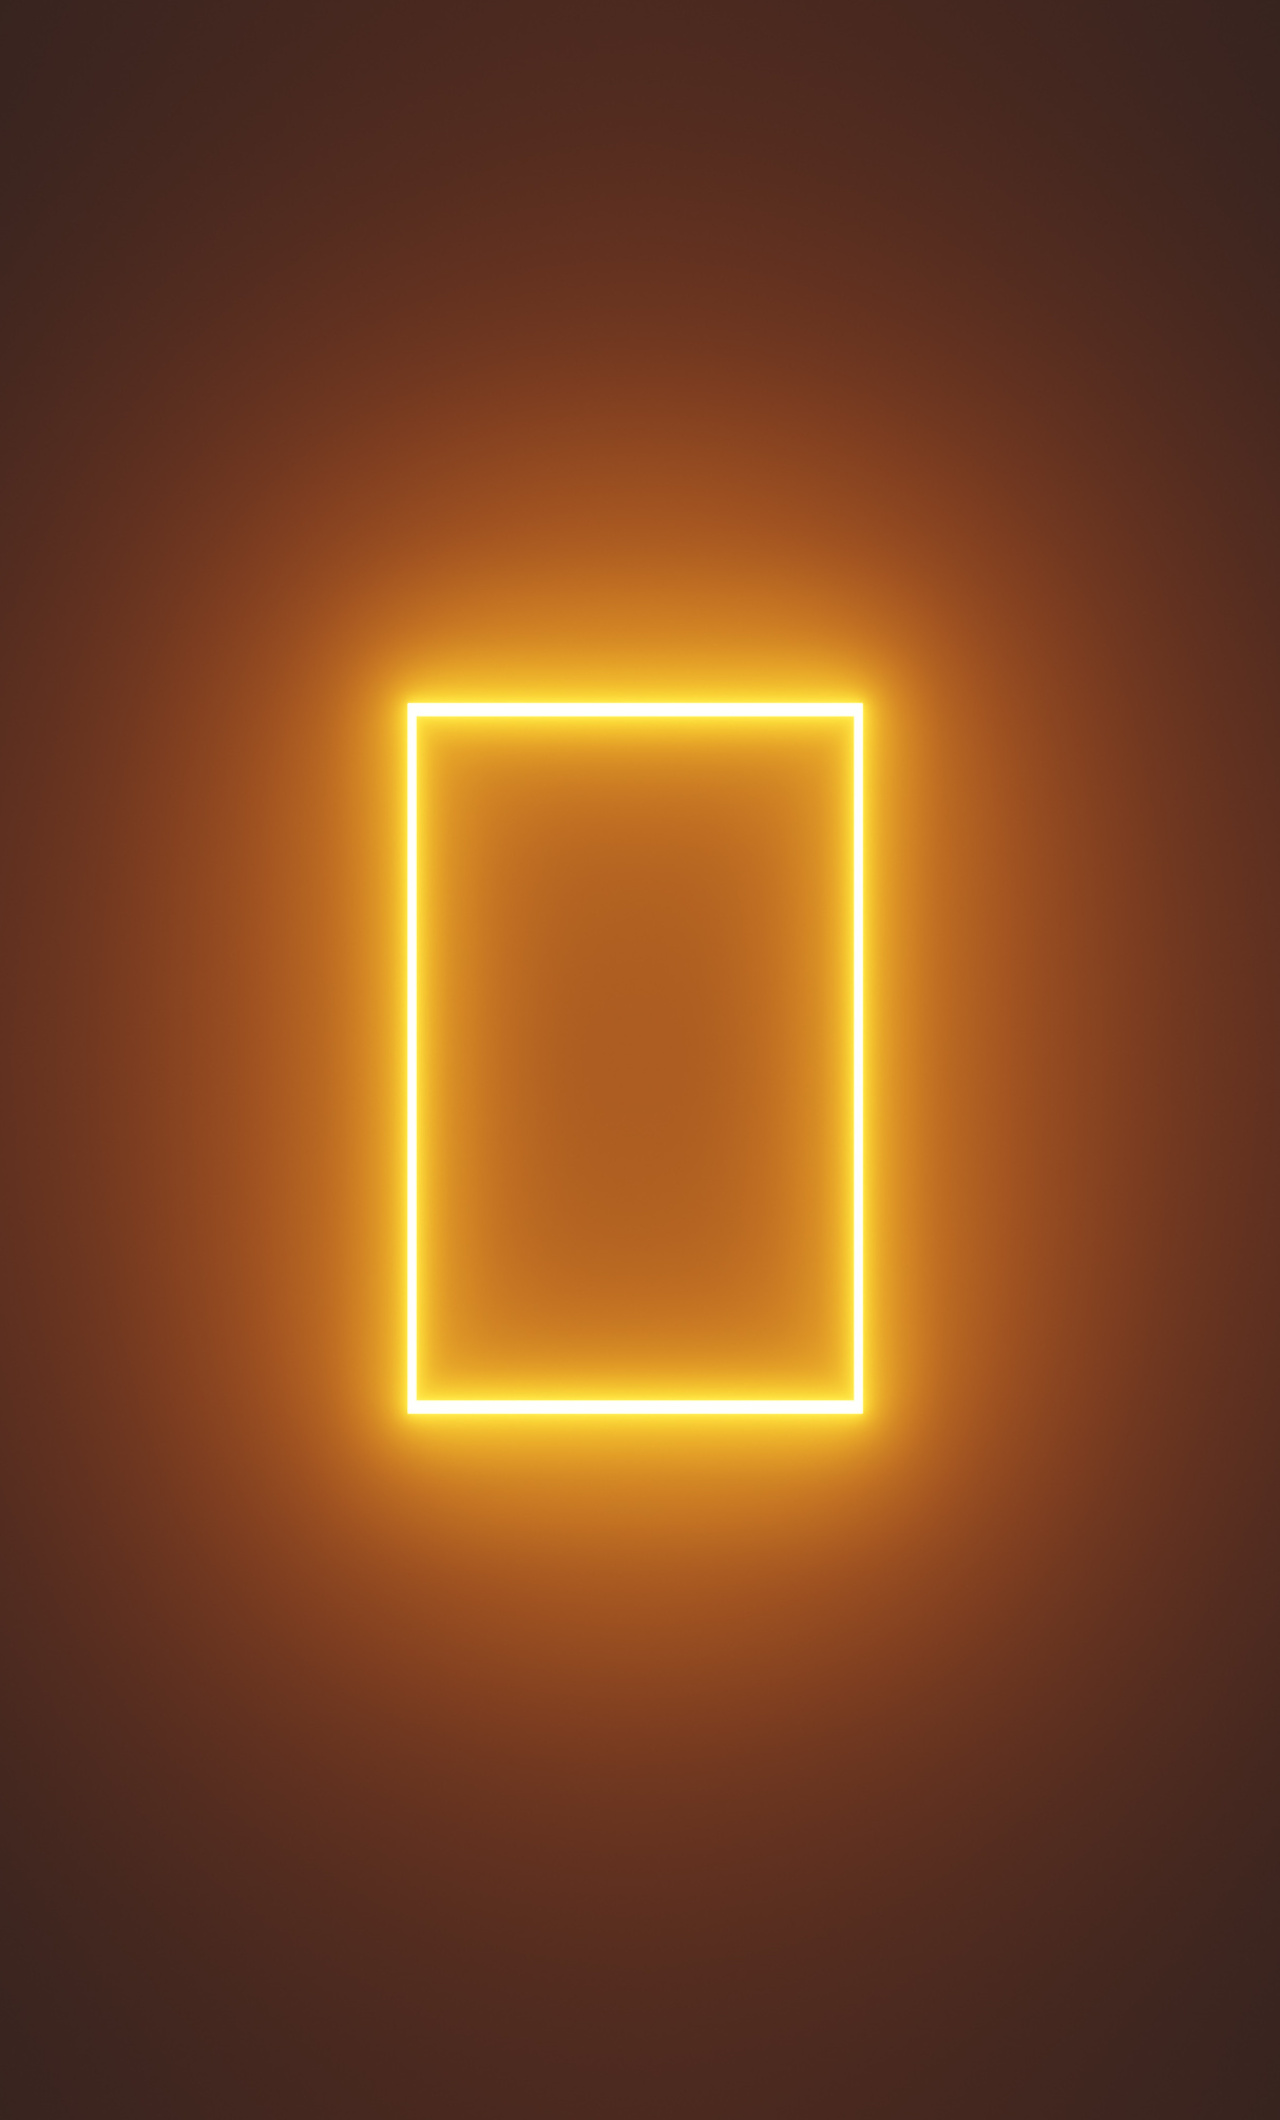 minimalistic-glowing-gold-window-4k-ku.jpg